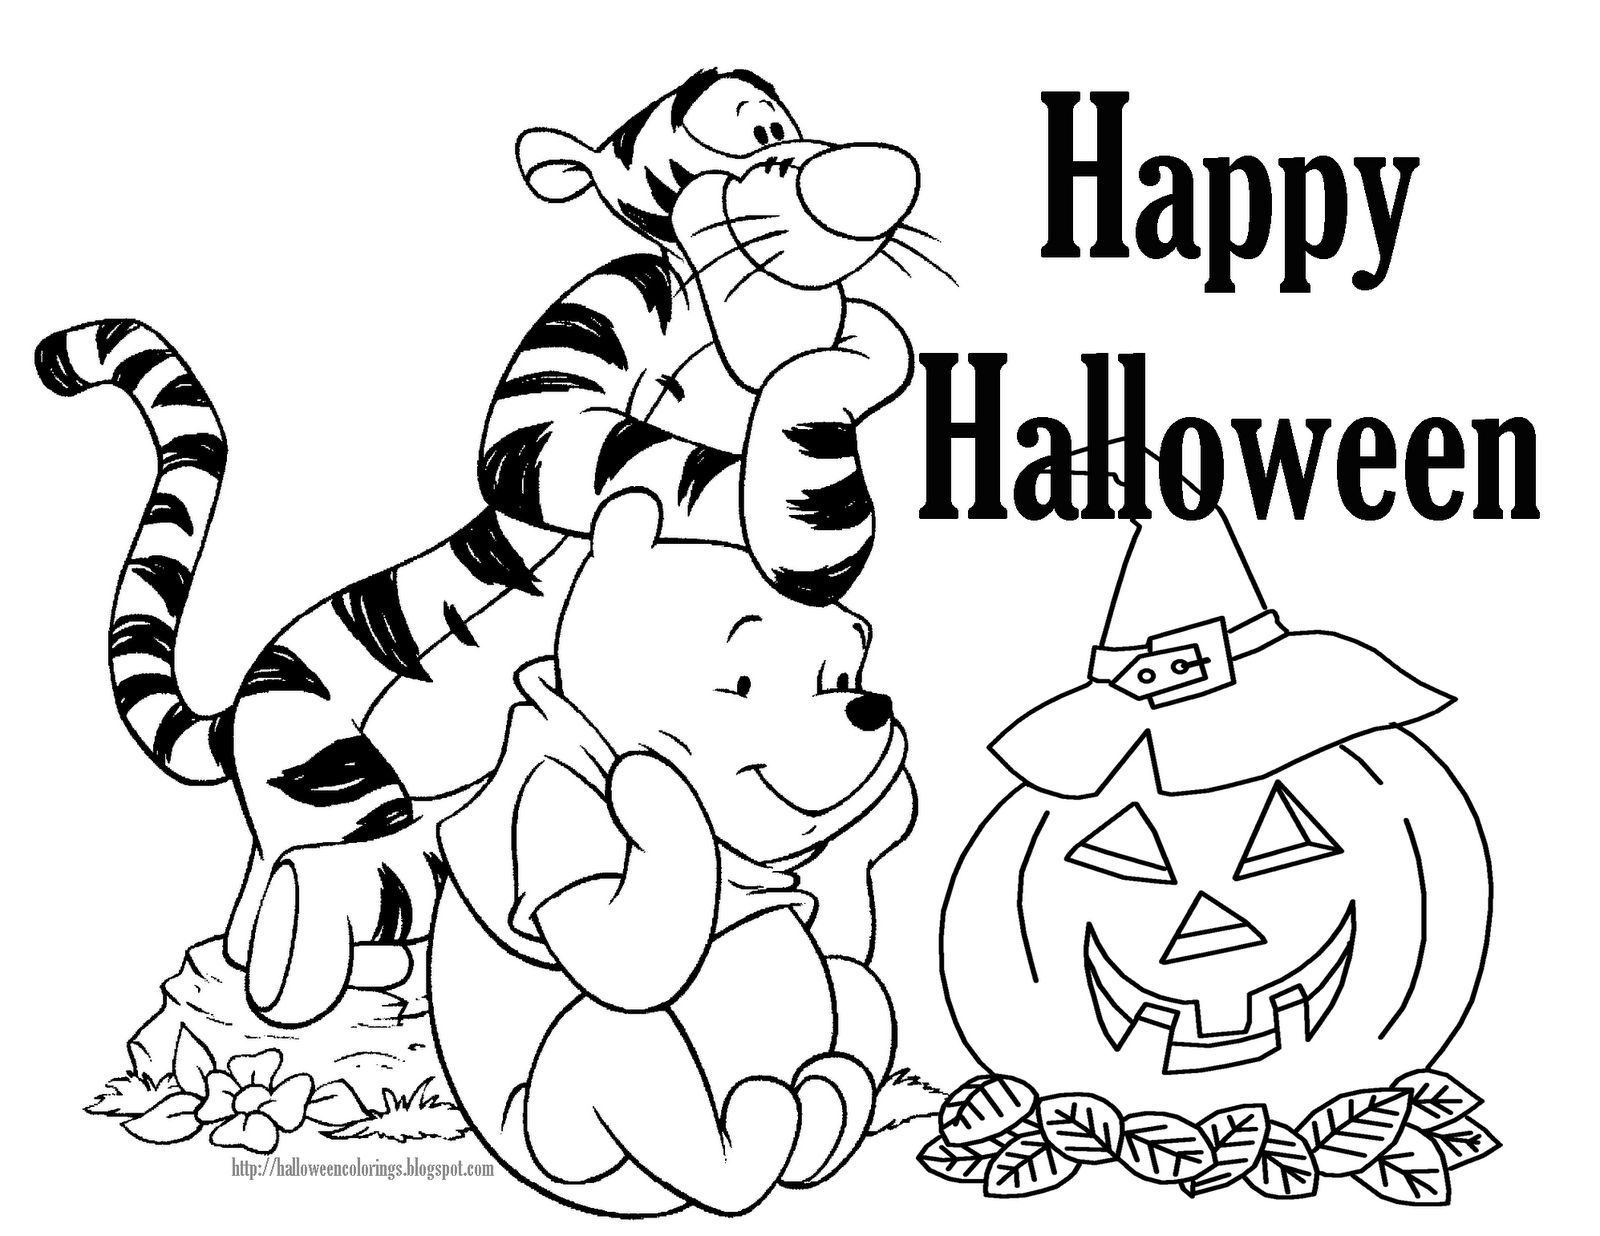 disney-halloween-coloring-page-0001-q1